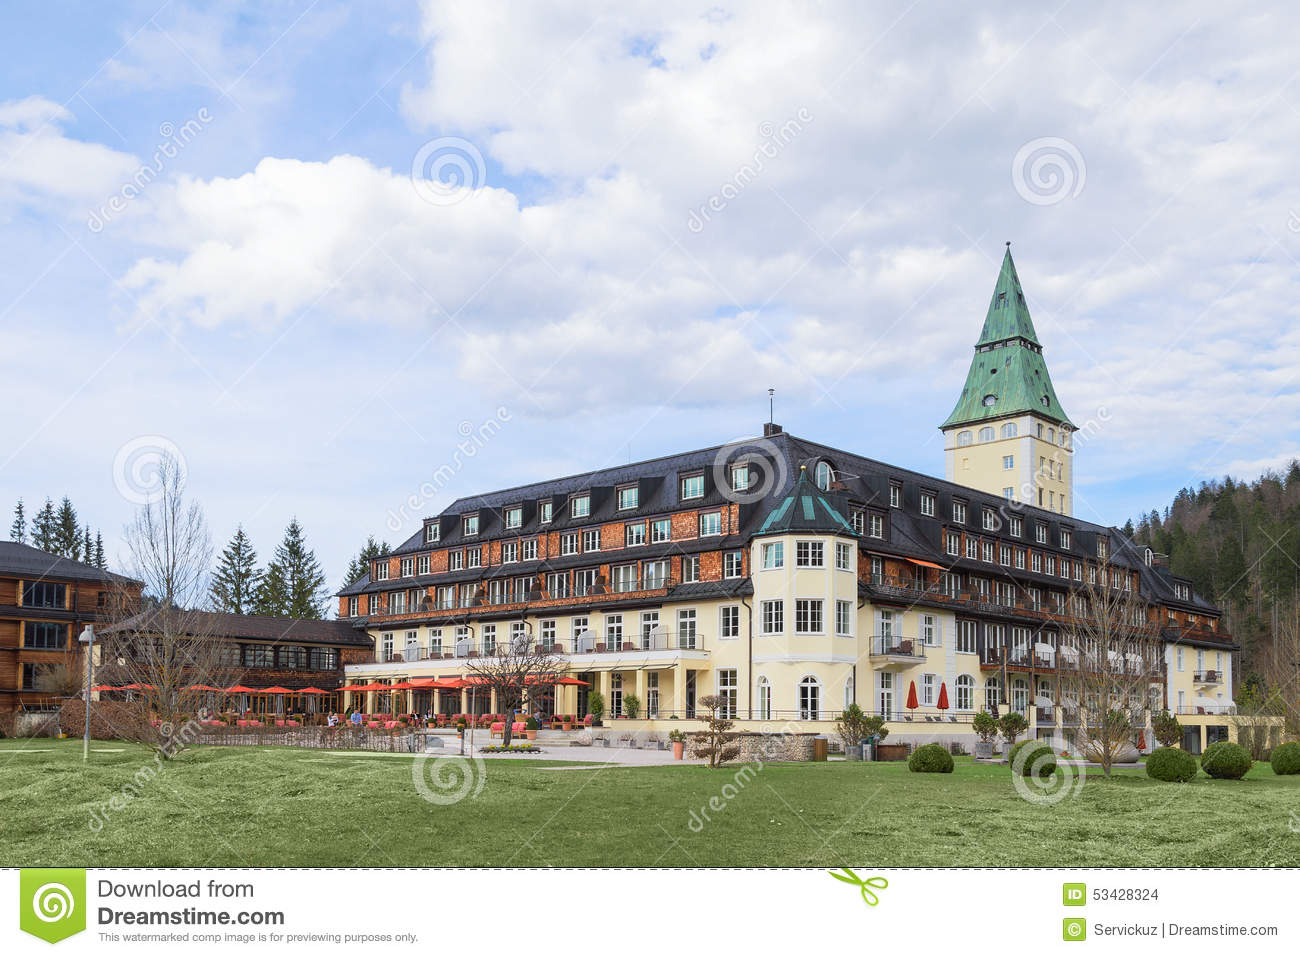 Hotel Schloss Elmau Royal Luxury Residence In Bavarian